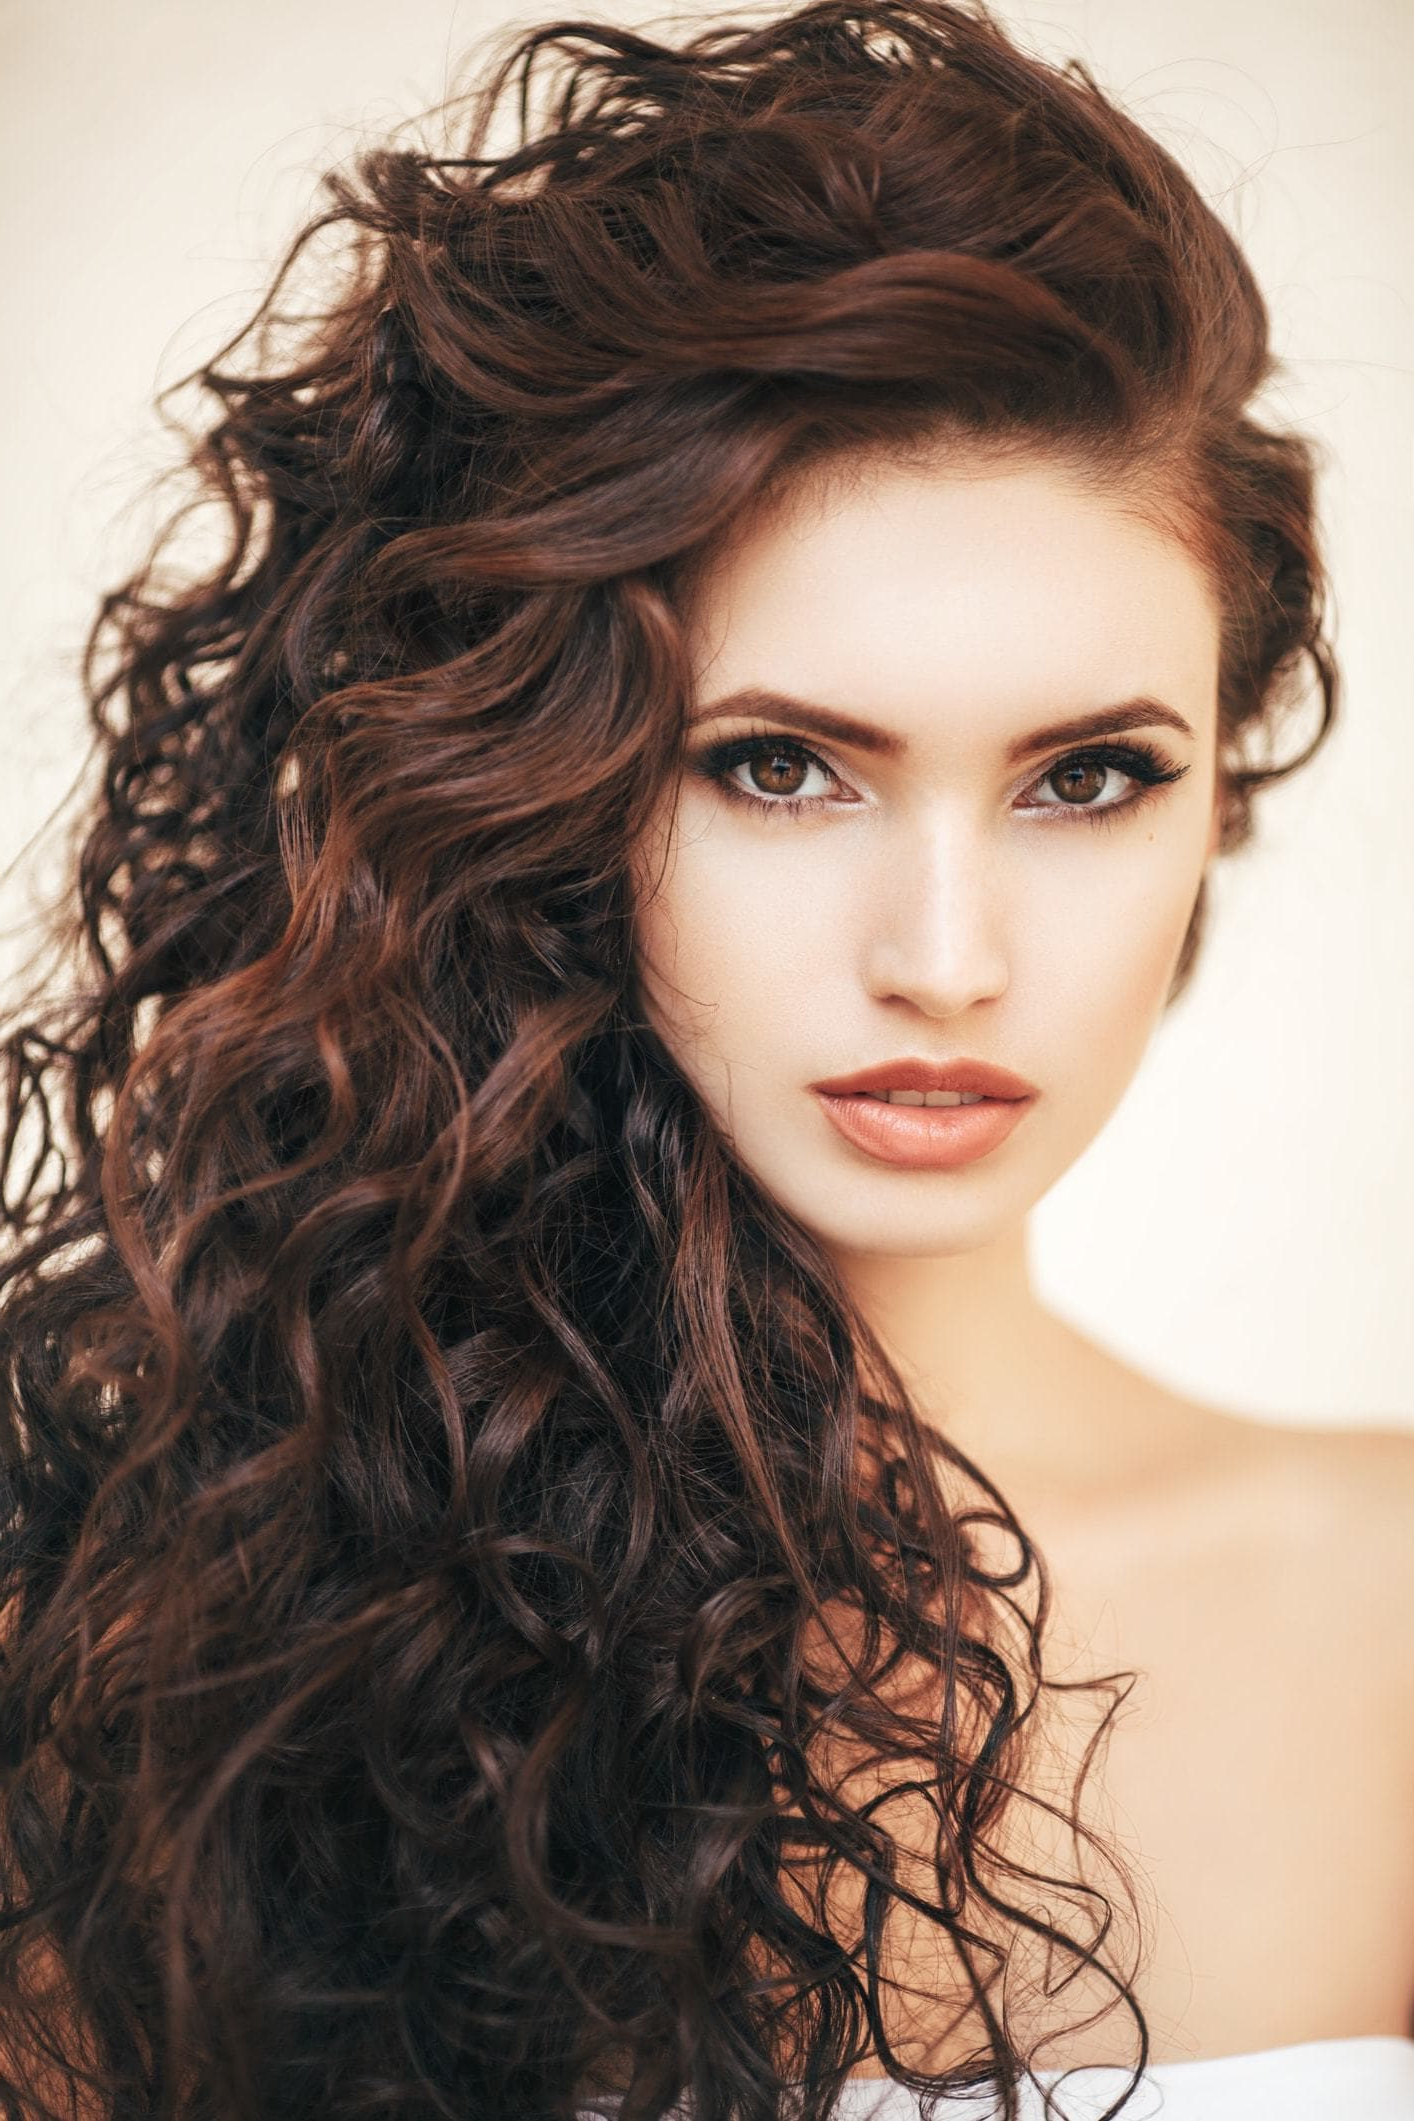 Trendy Long Tousled Voluminous Hairstyles In Curly Hairstyles For Long Hair: 19 Kinds Of Curls To Consider (Gallery 18 of 20)